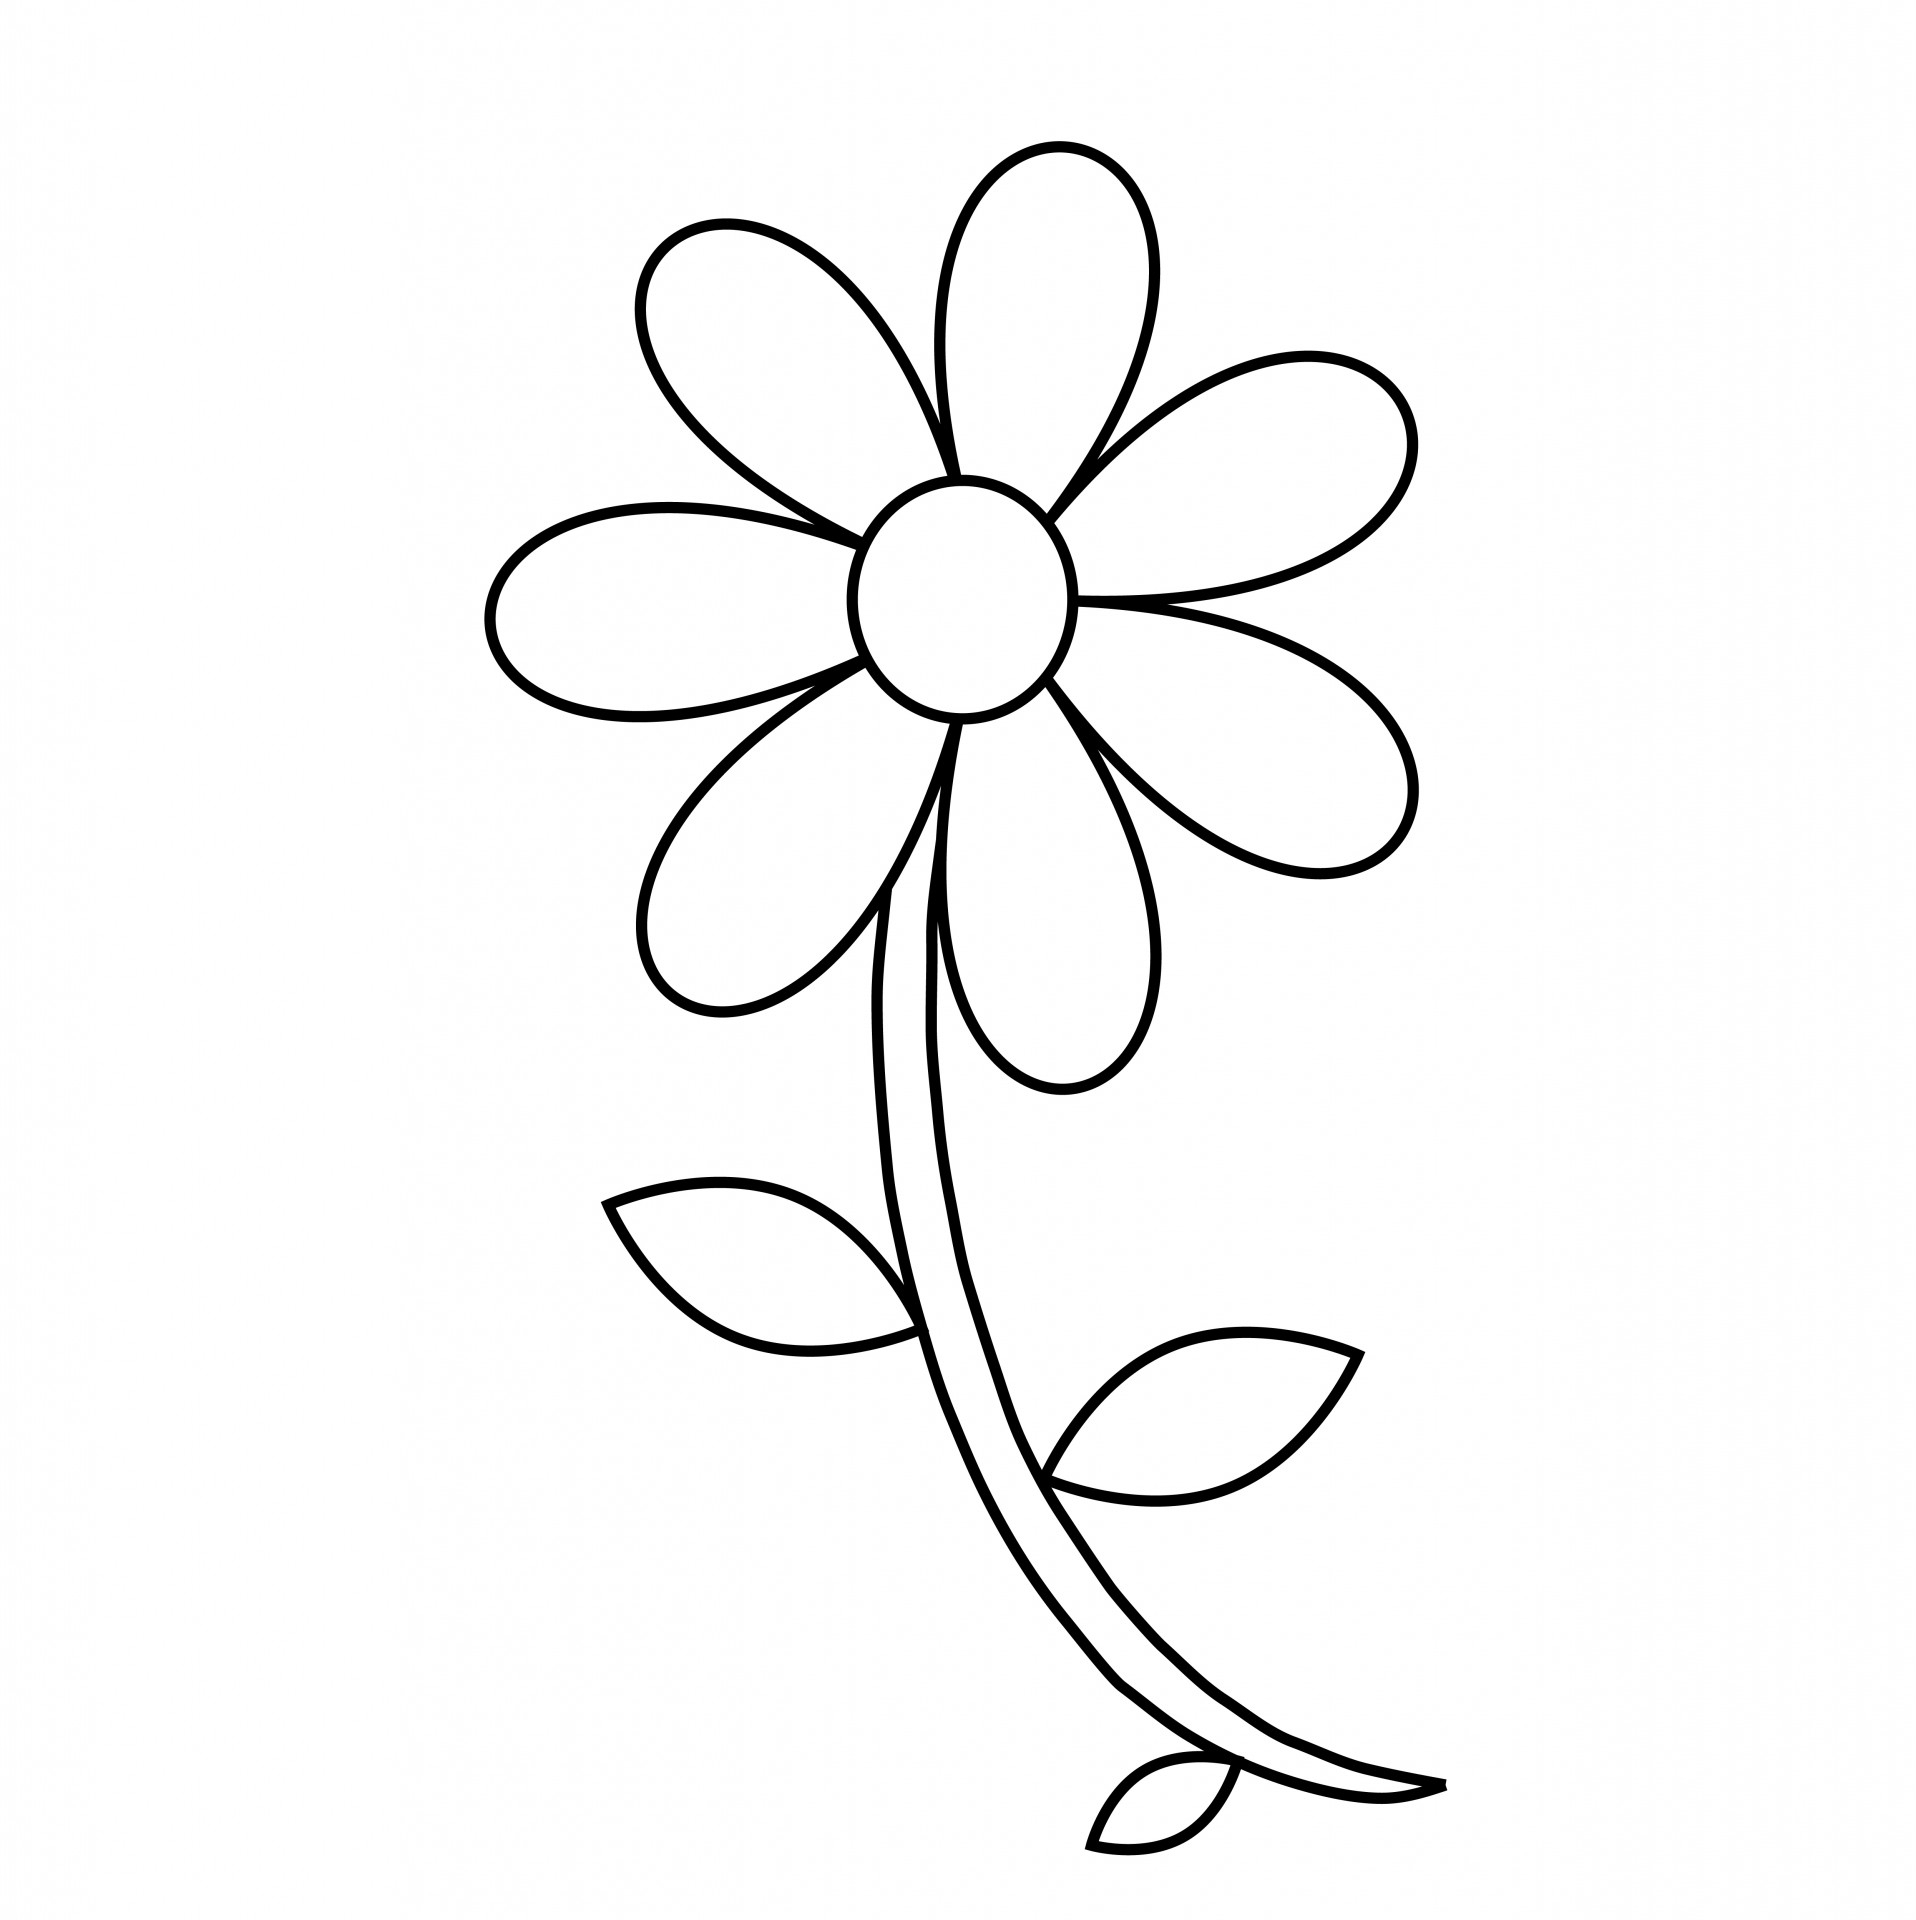 1916x1920 Outline Drawing Of Flowers Eletragesi Easy Flower Drawing Outline